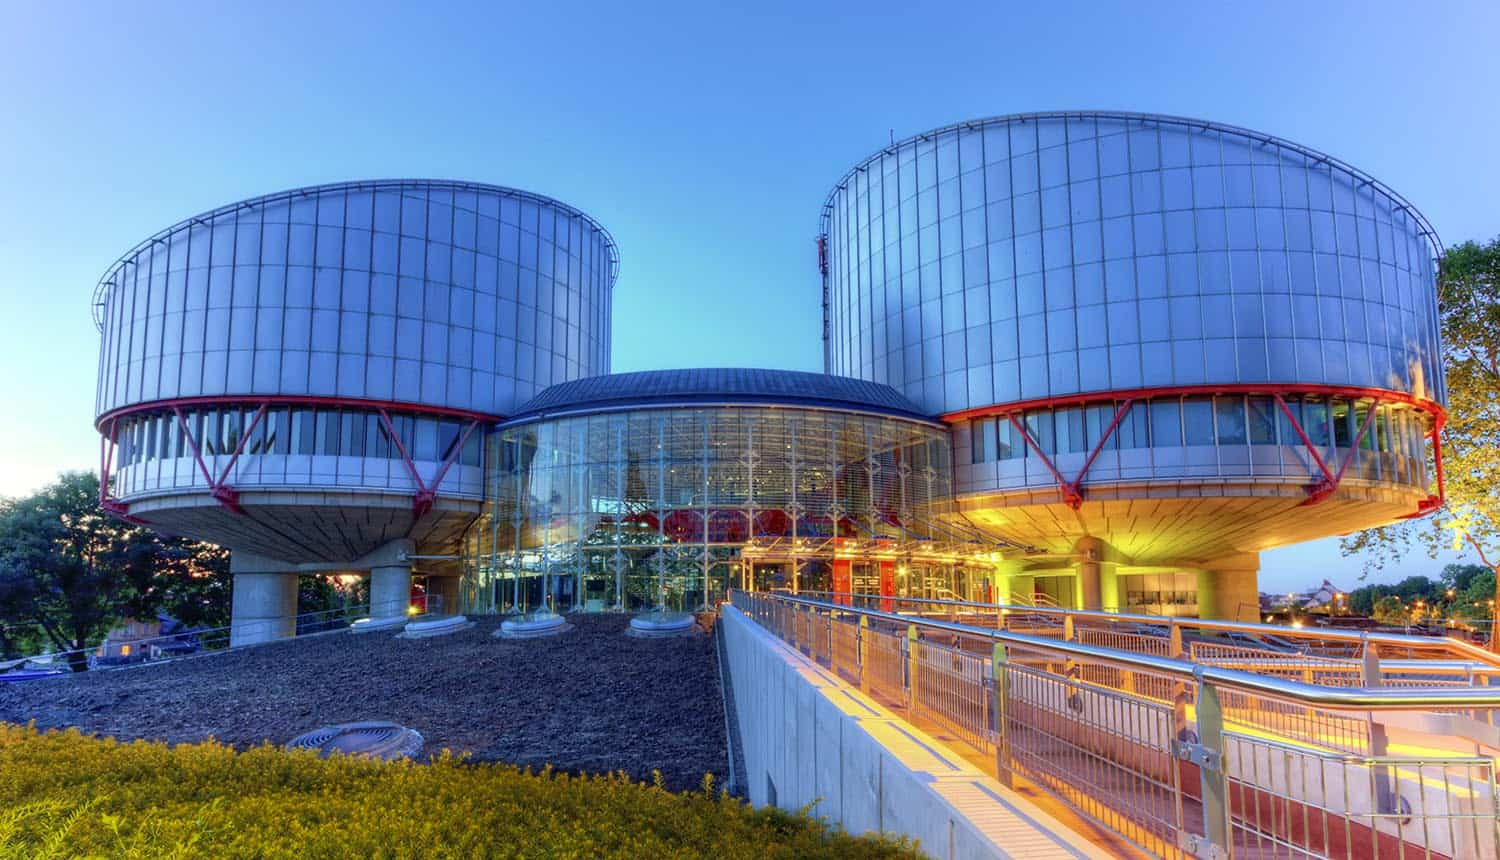 European Court of Human Rights building by night showing GCHQ decision on mass surveillance